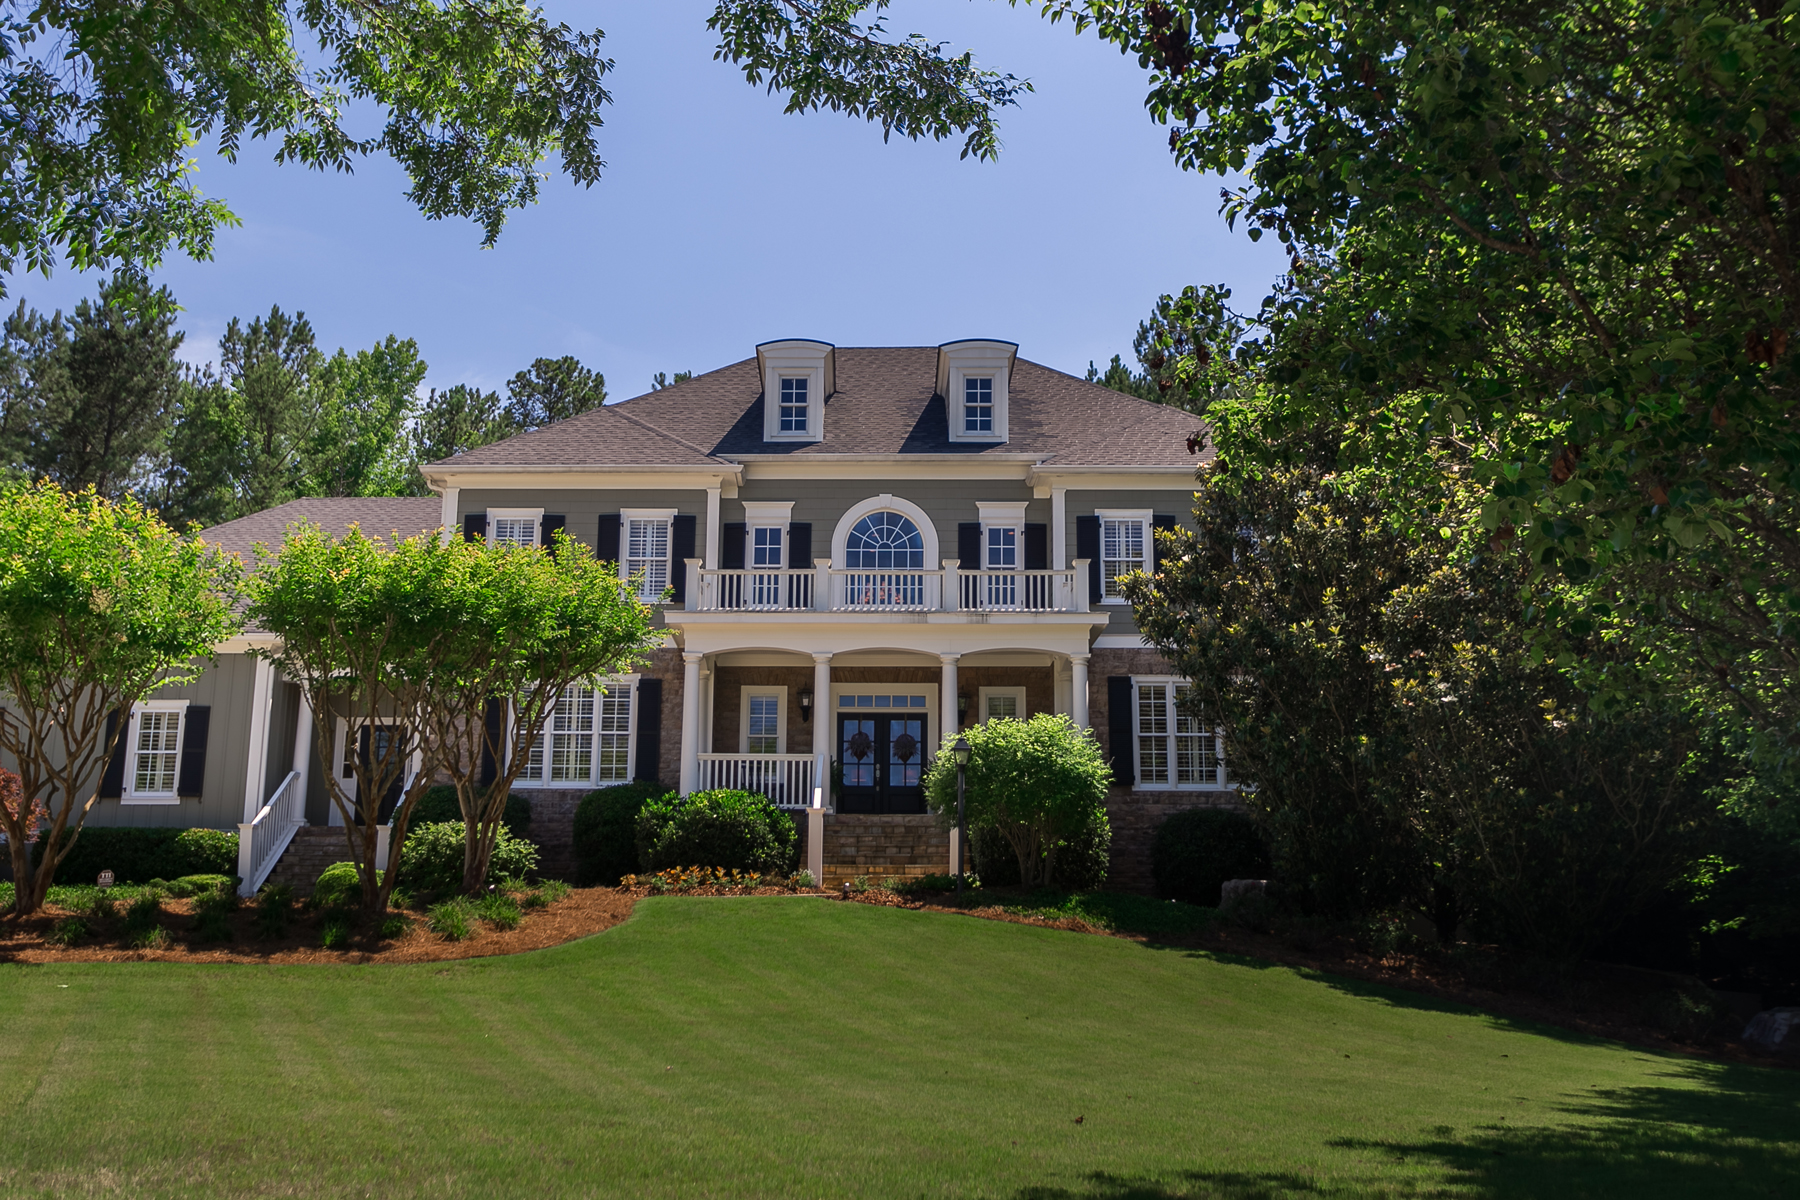 Casa Unifamiliar por un Venta en Pure Elegance In Highgrove With Pool And Finished Basement 635 Saint Charles Place Fayetteville, Georgia, 30215 Estados Unidos